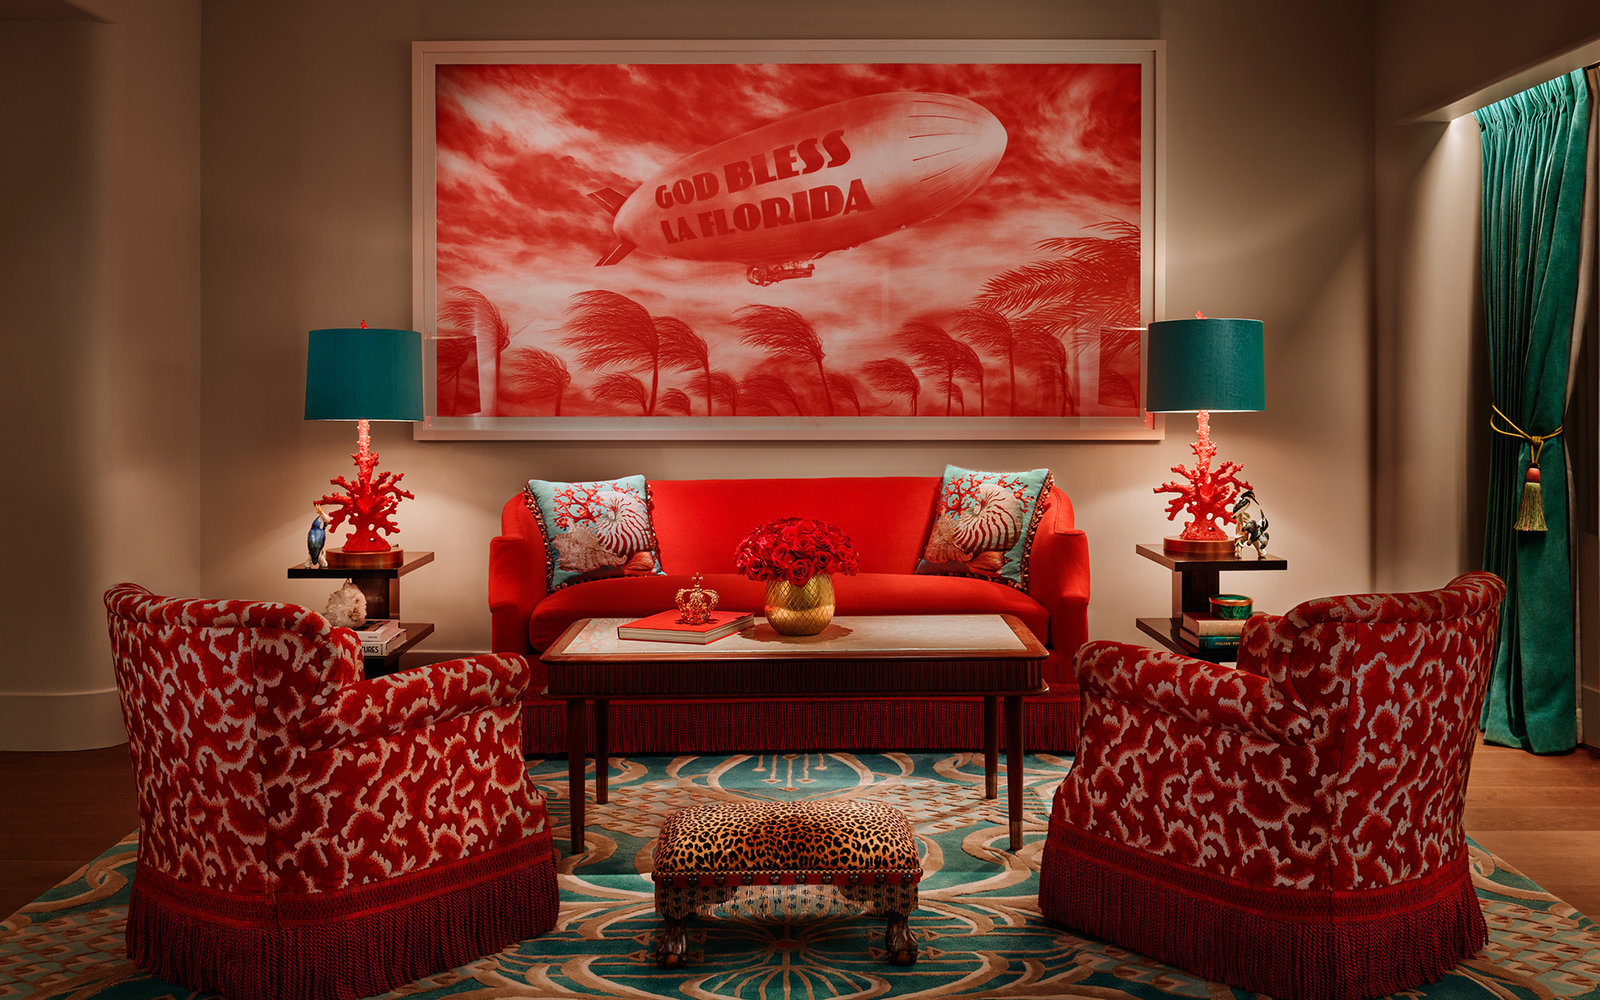 The Living Room at Faena Hotel Miami Beach